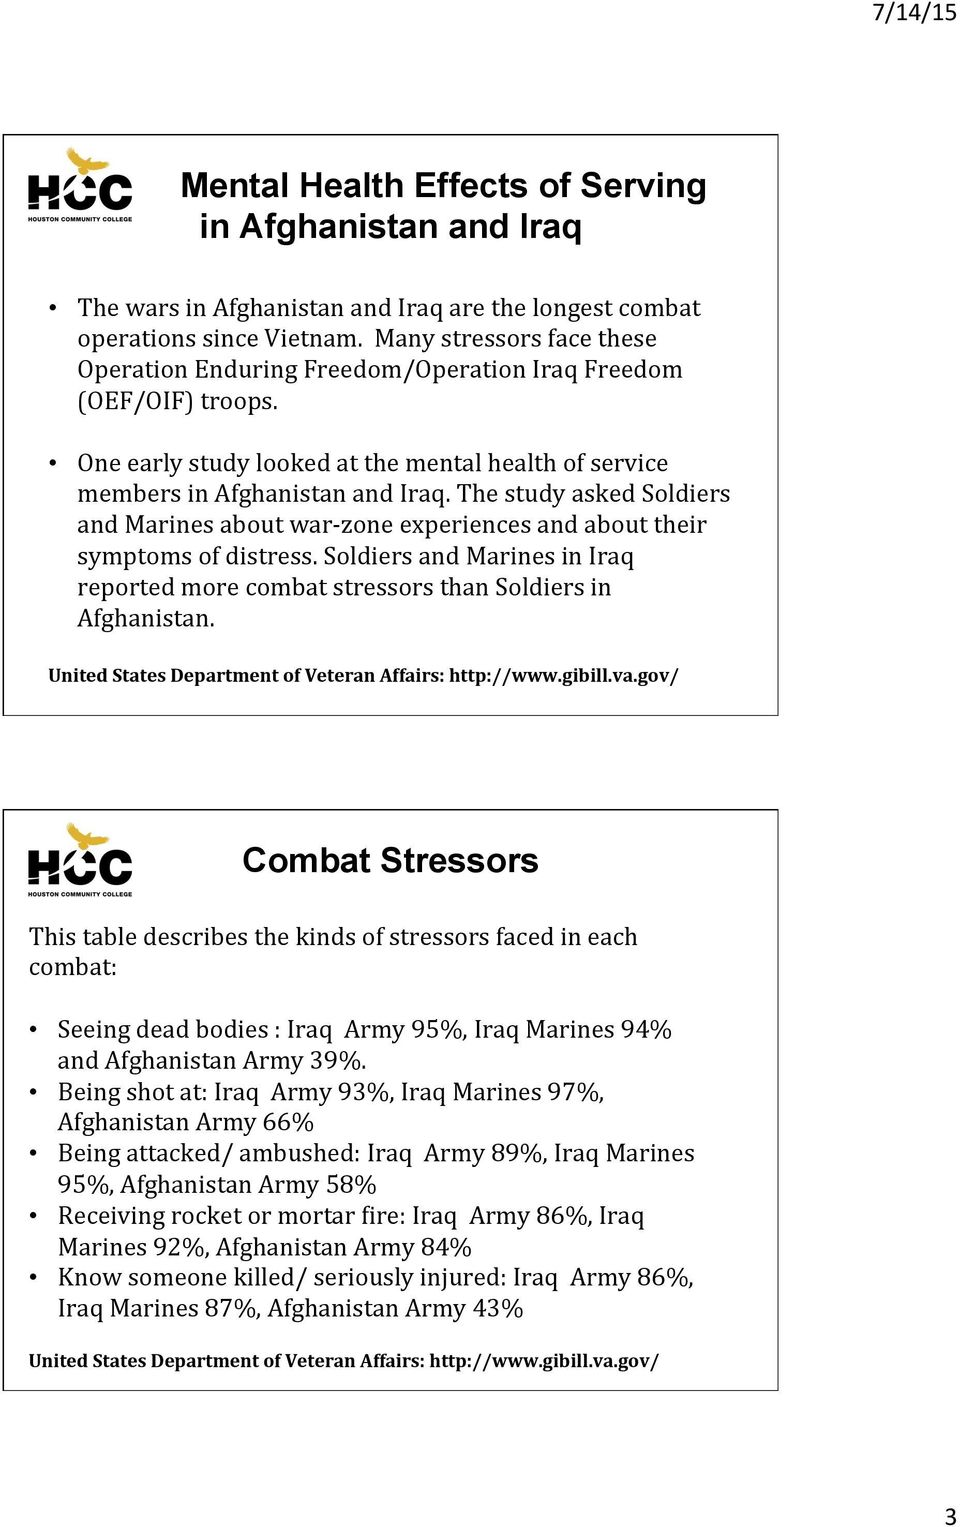 The study asked Soldiers and Marines about war- zone experiences and about their symptoms of distress. Soldiers and Marines in Iraq reported more combat stressors than Soldiers in Afghanistan.